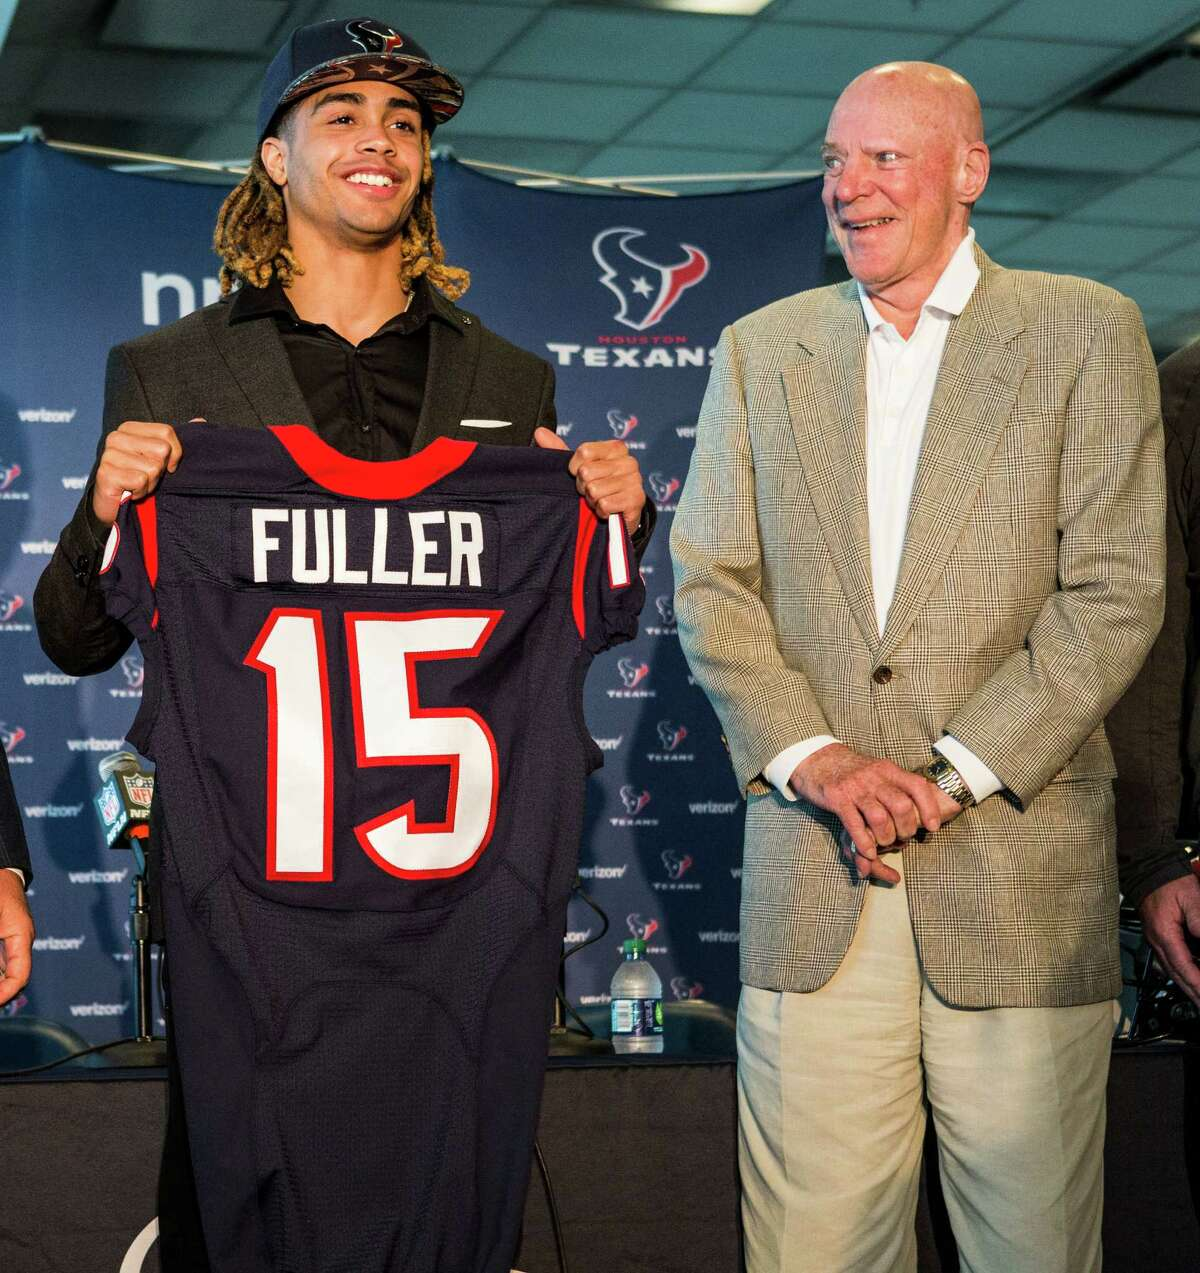 Round 1: Will Fuller, WR, Notre DameHeight/weight: 6-0, 186 Strengths: Reaches his top speed quickly and excels at taking the defense vertically, using his multiple gears to gain separation from defenders. Shows a knack for timing his jump and rarely misjudges the trajectory of downfield passes. Aggressively works to get his body situated so that that defenders have to go through him at the catch point. Shows a strong plant-and-go quickness in his breaks. Weaknesses: Is a bit on the lean side for an NFL receiver and his functional strength is below average, making him easily knocked off routes and unlikely to pick up extra yards following the initial contact. Has smallish hands and is sometimes prone to relying on body catches. Drops more passes than you'd like to see for a player with his ability and can be unreliable on contested balls.